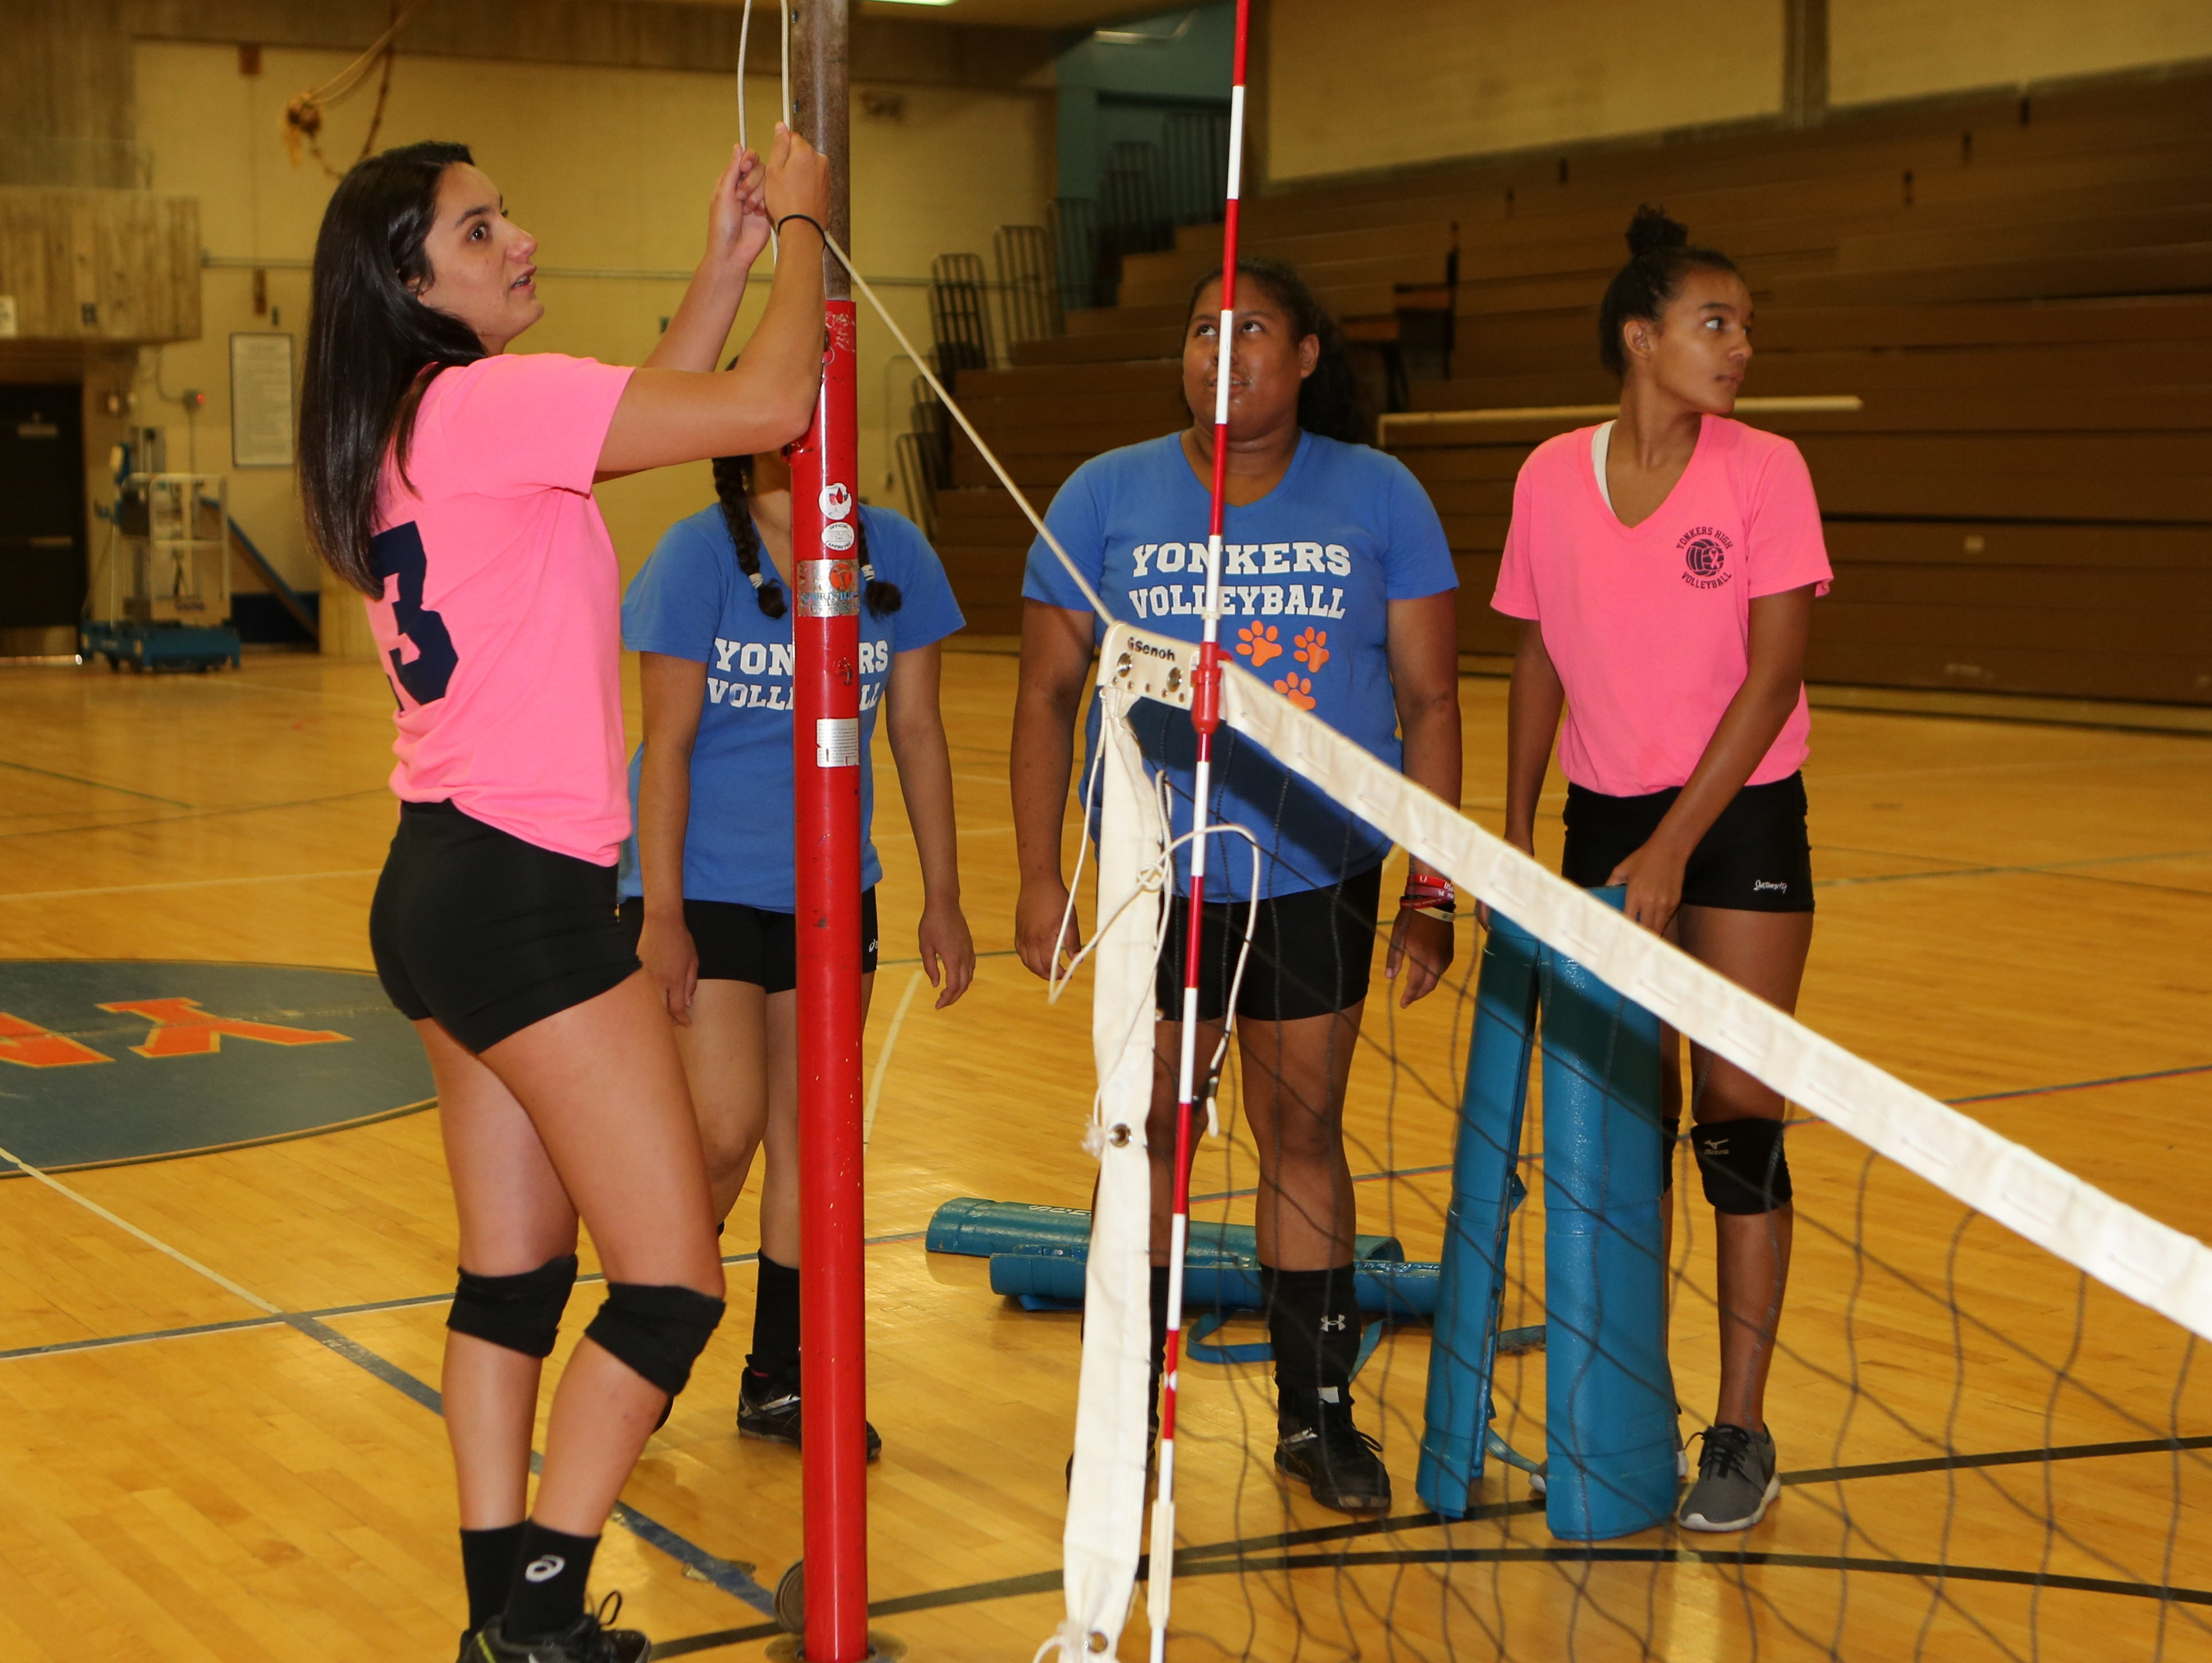 Nicole Frascati, left, a senior volleyball player at Yonkers Middle High School, helps set up a net at the school, Aug, 25, 2016.